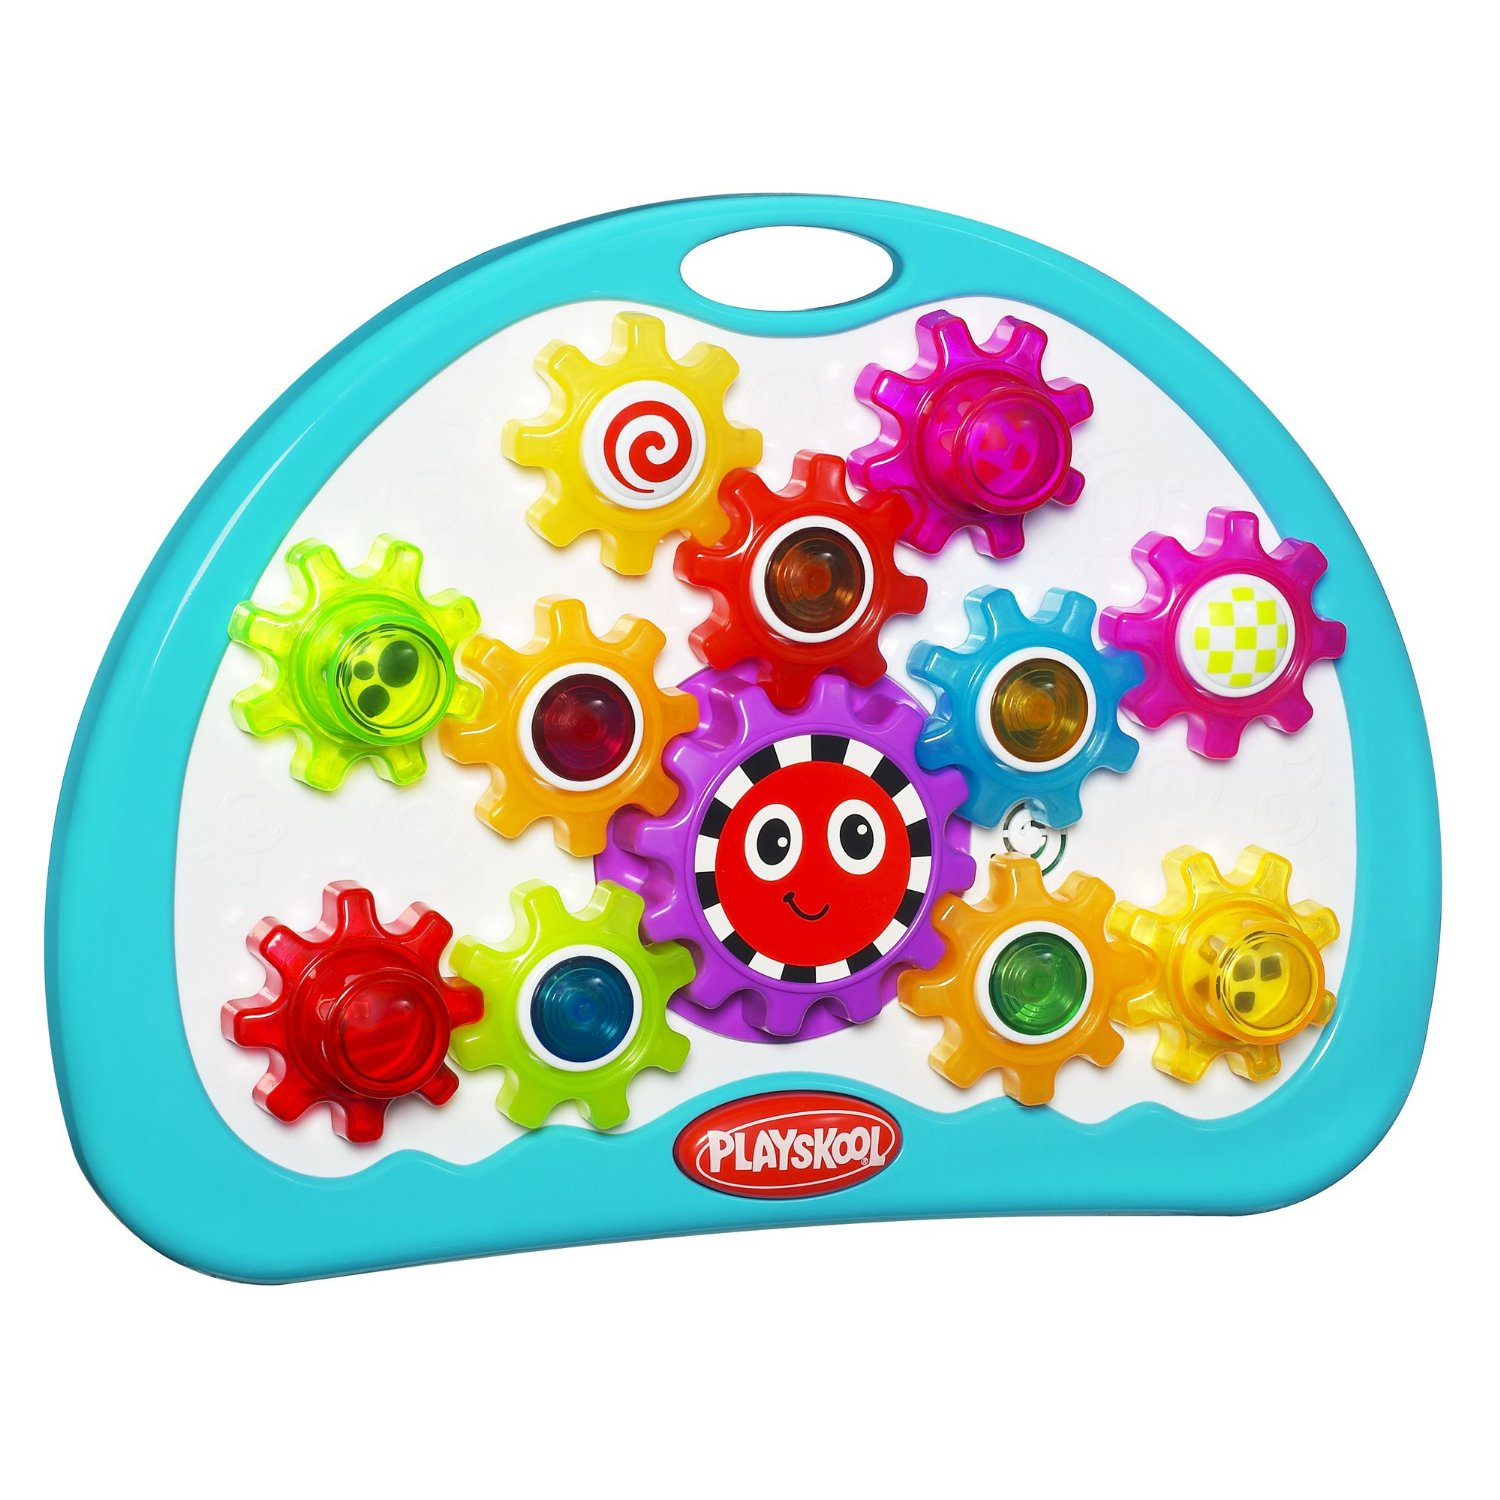 Playskool Busy Gears Switch Enabled